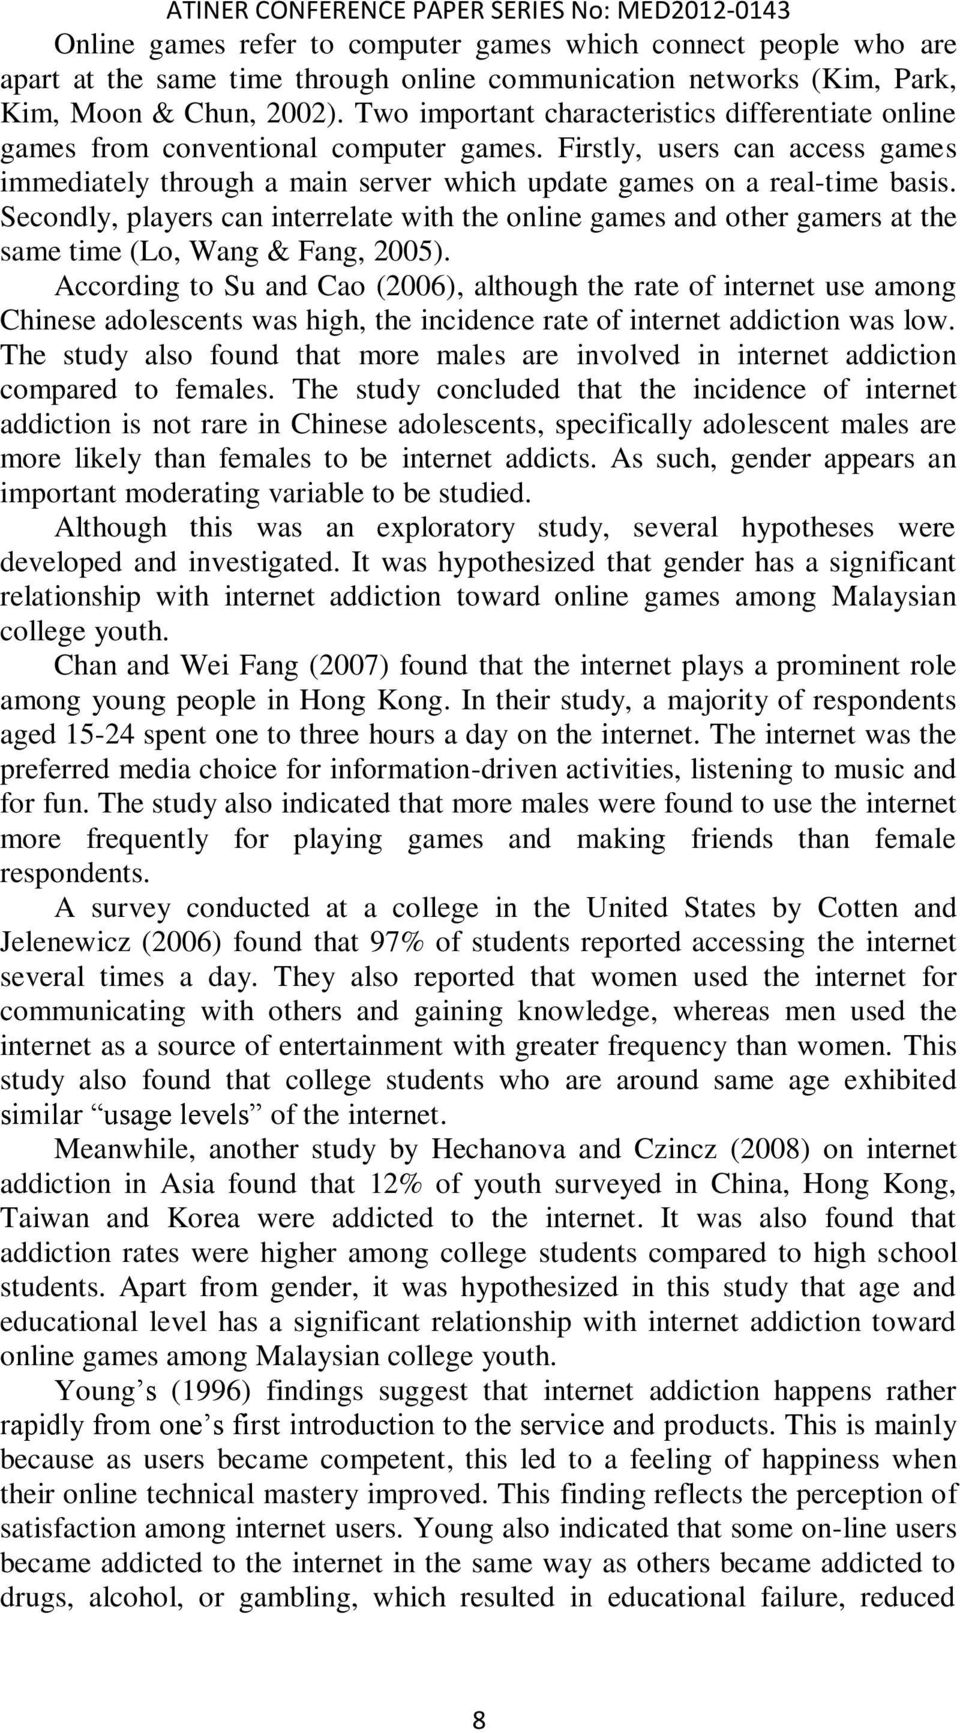 Secondly, players can interrelate with the online games and other gamers at the same time (Lo, Wang & Fang, 2005).